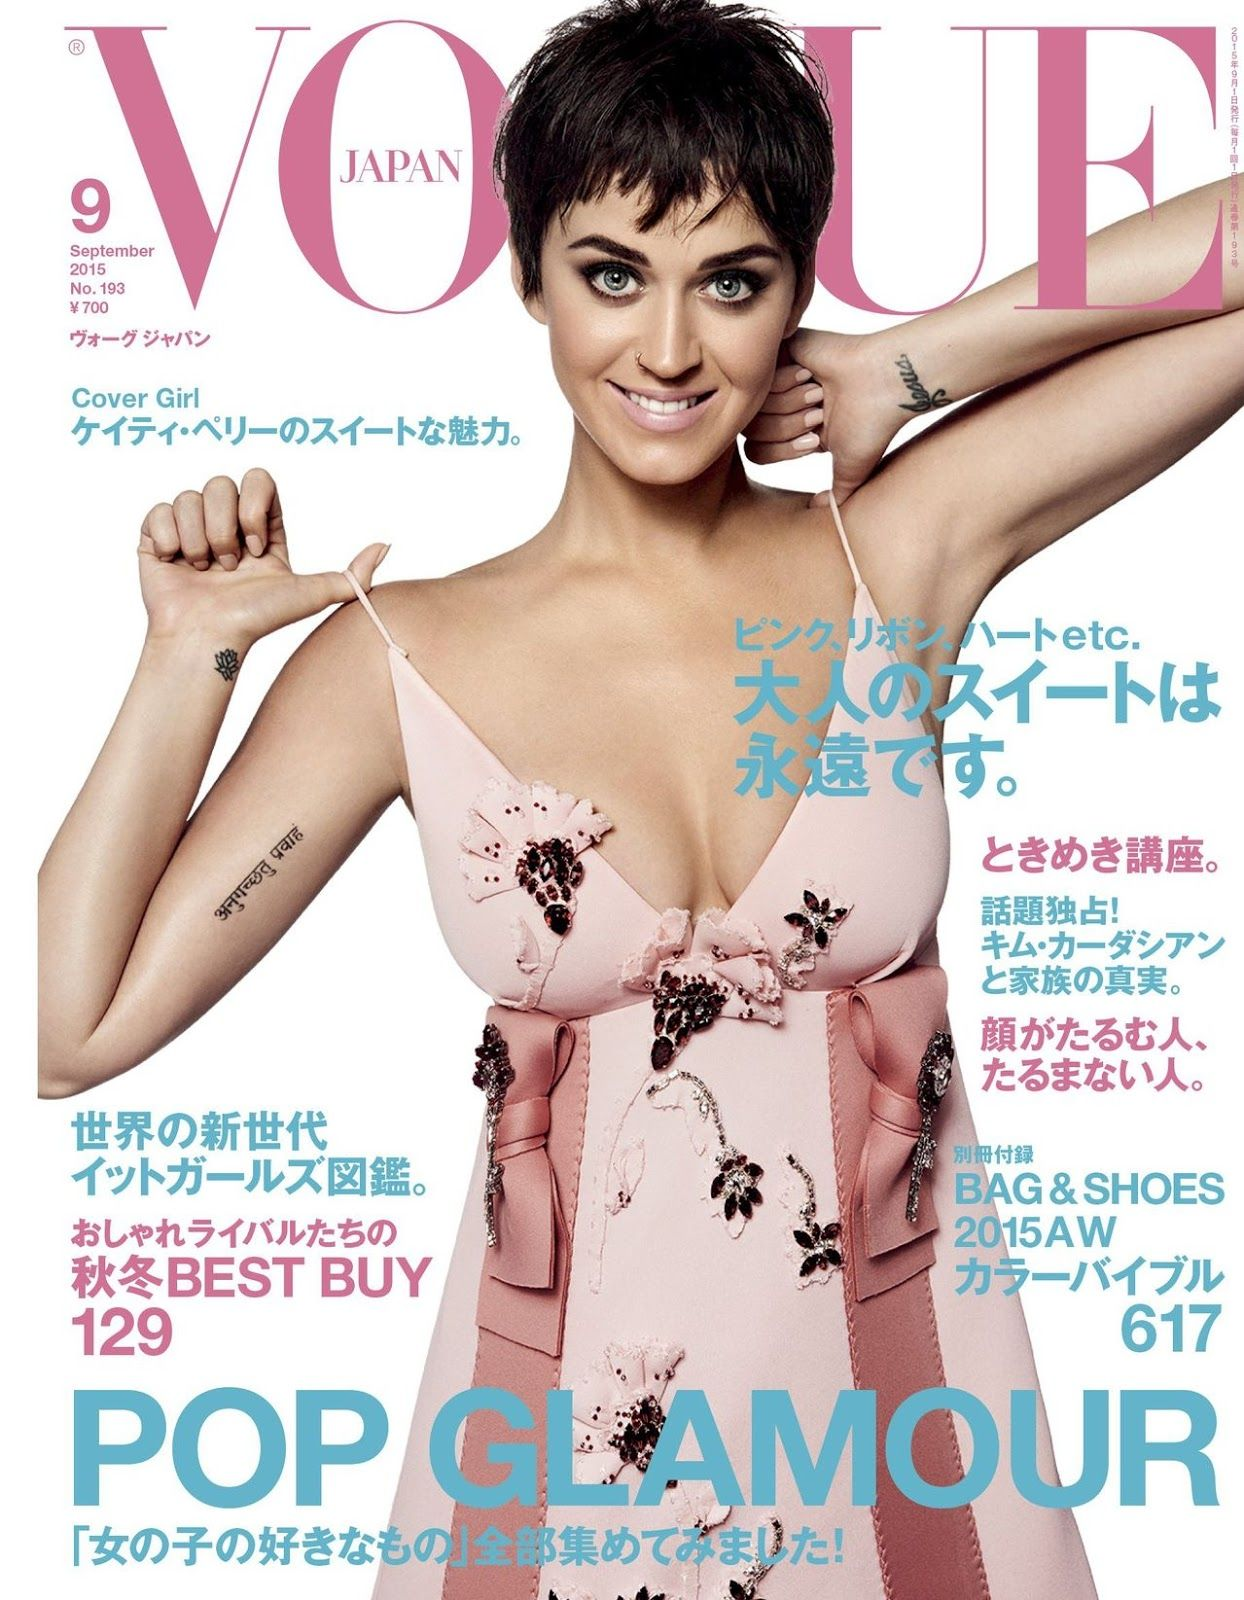 Katy Perry Vogue Japan, September 2015